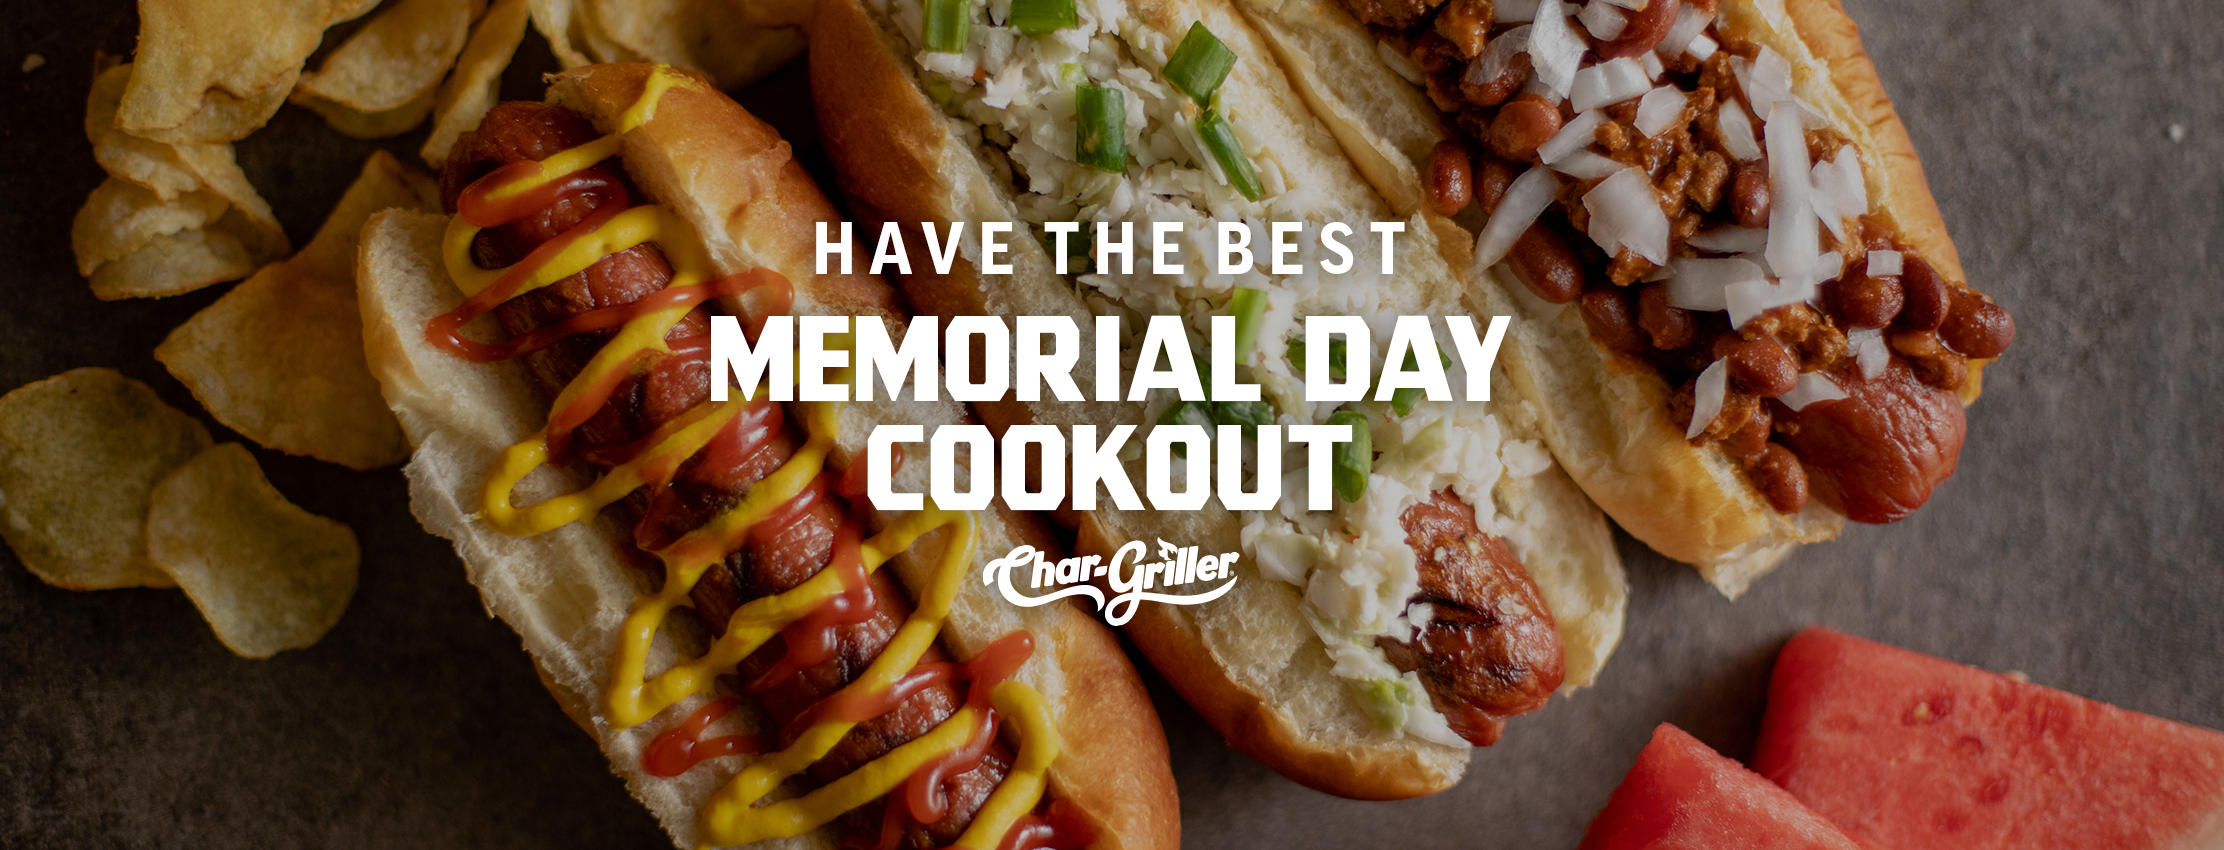 How to Have the Best Memorial Day Cookout